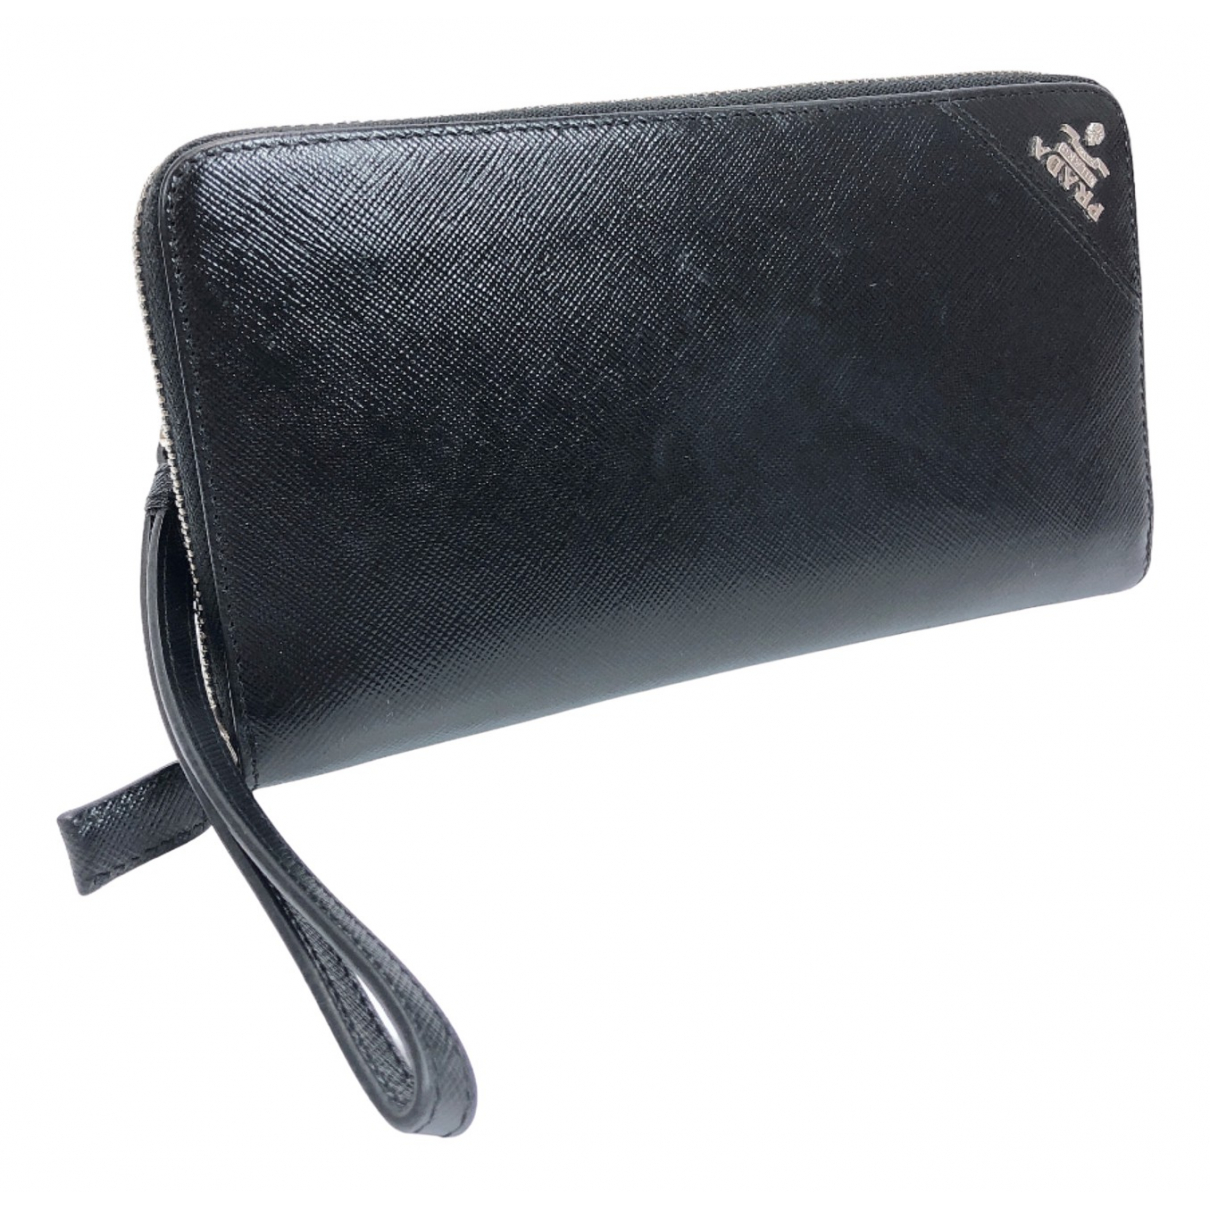 Prada N Black Leather Small bag, wallet & cases for Men N